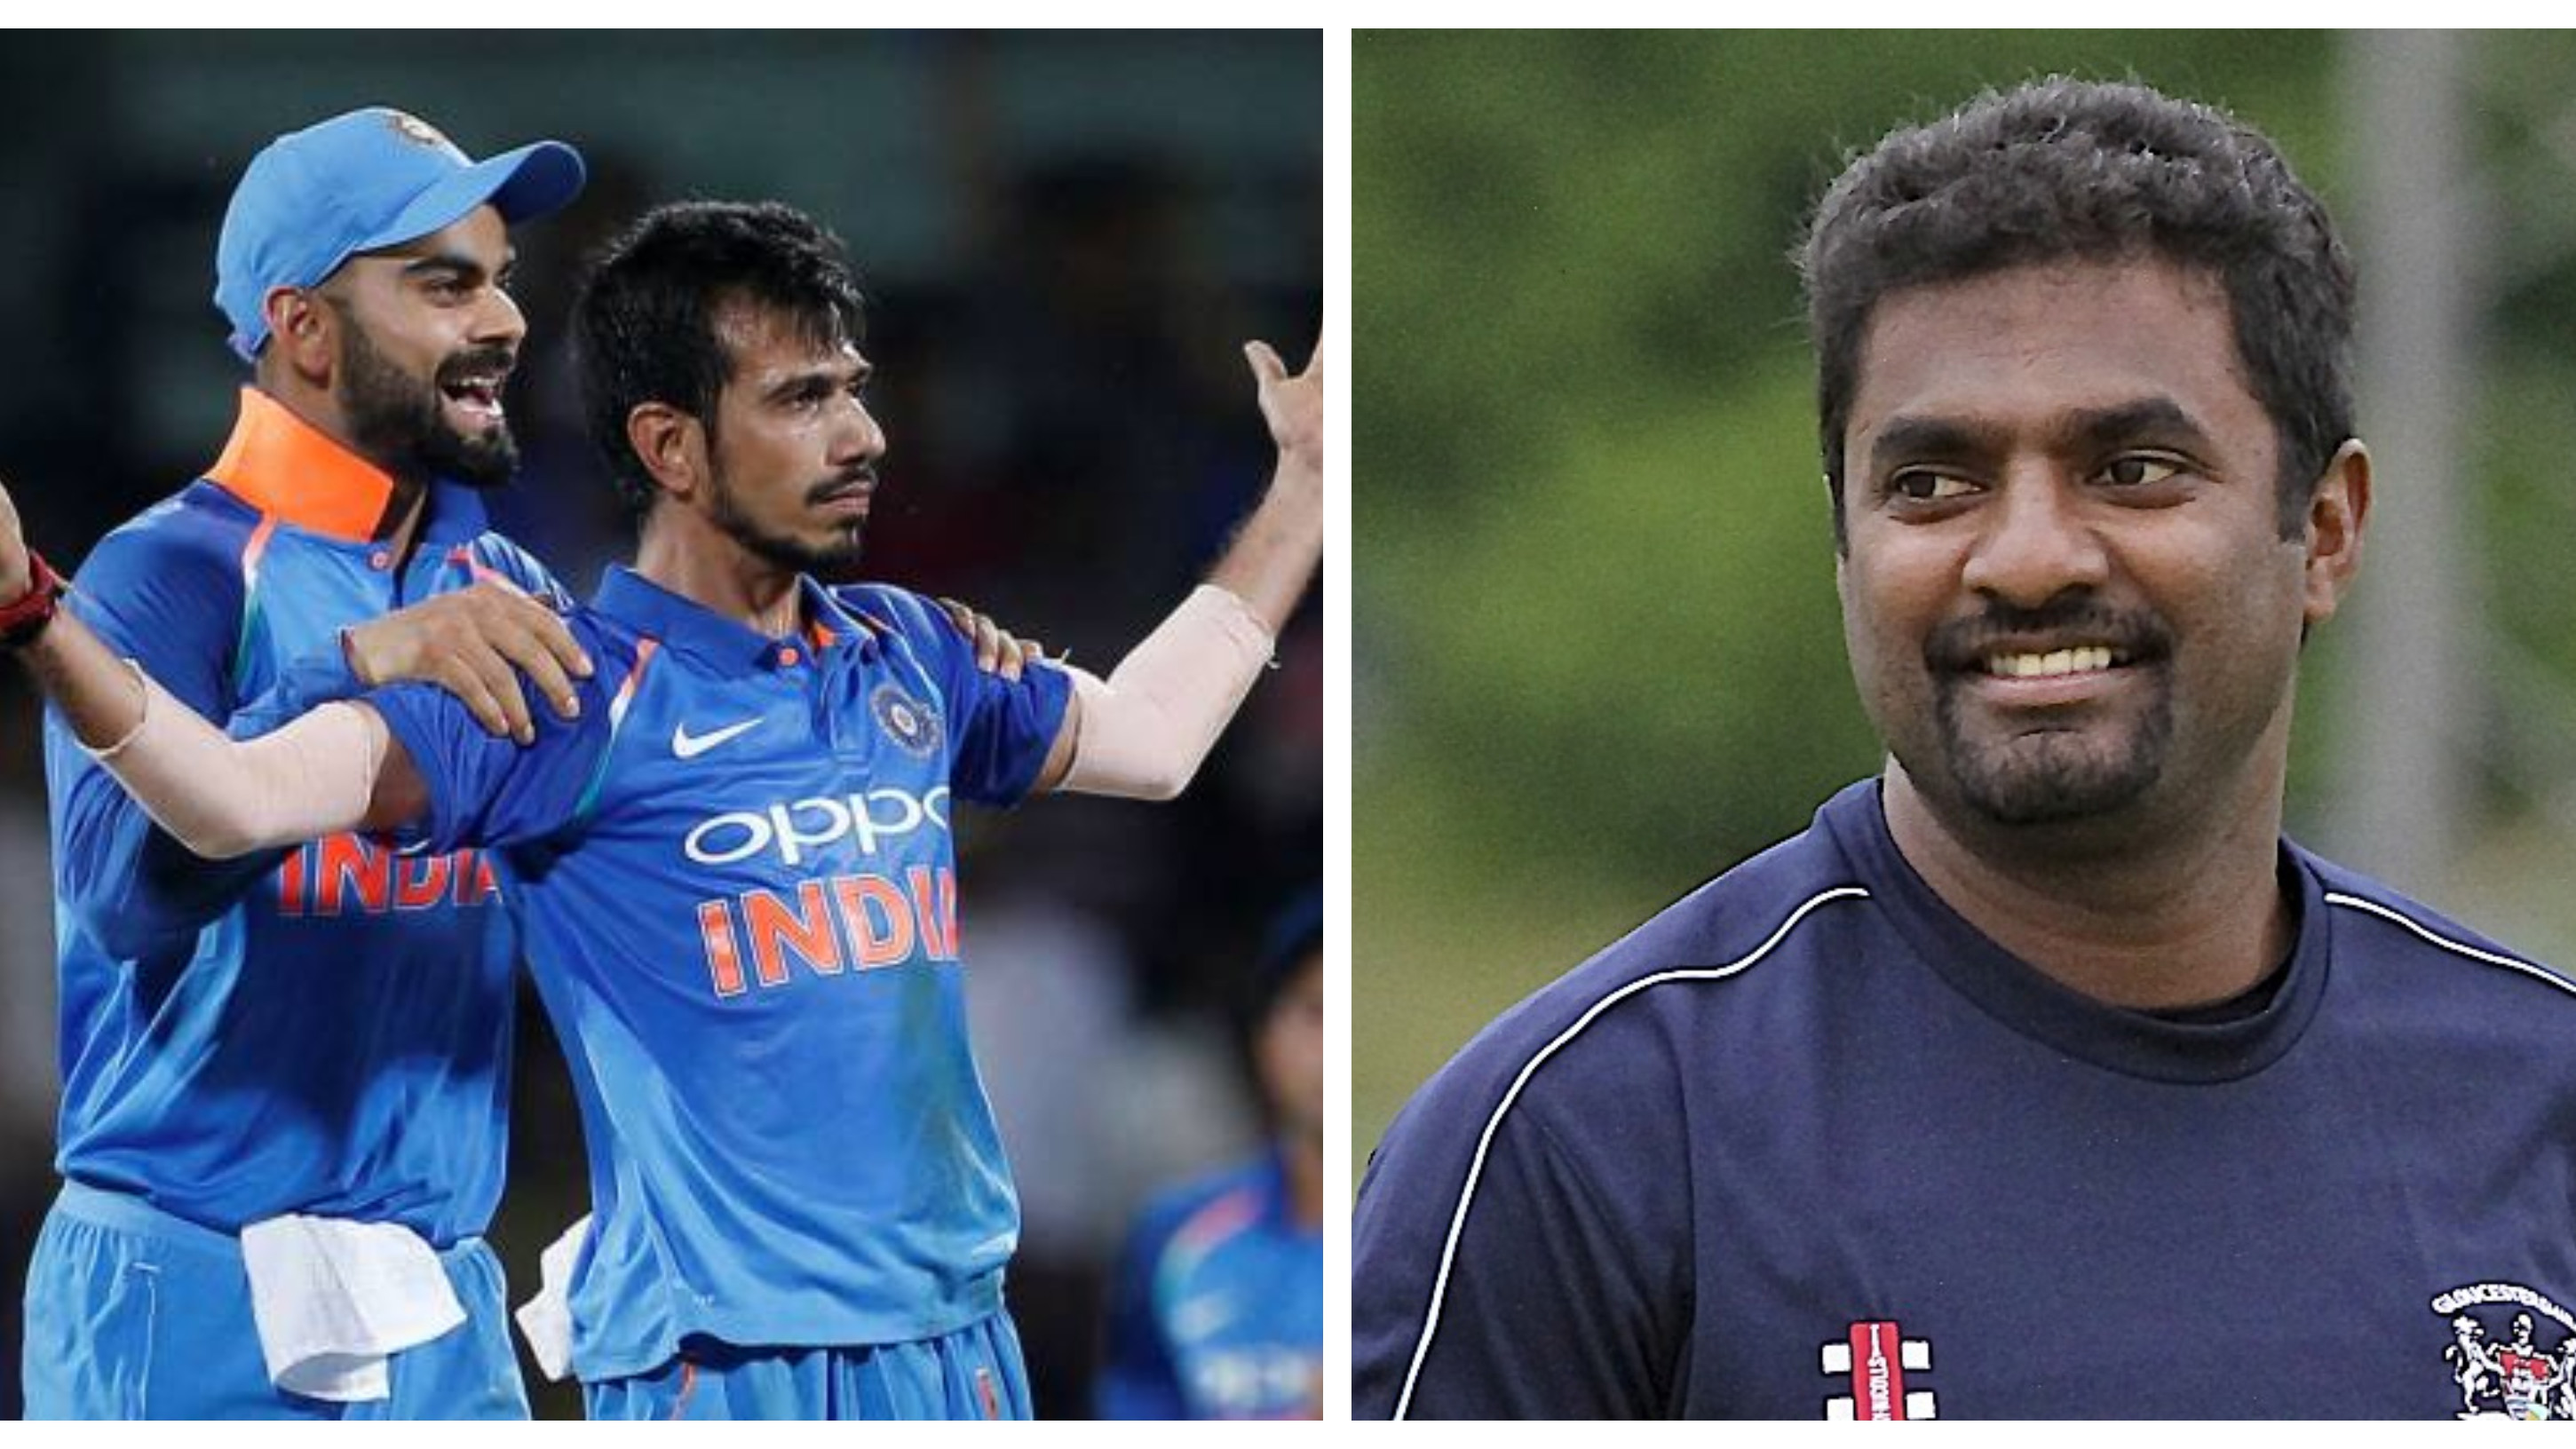 IND v AUS 2019: Muralitharan comes out in support of Yuzvendra Chahal after failure in Mohali ODI